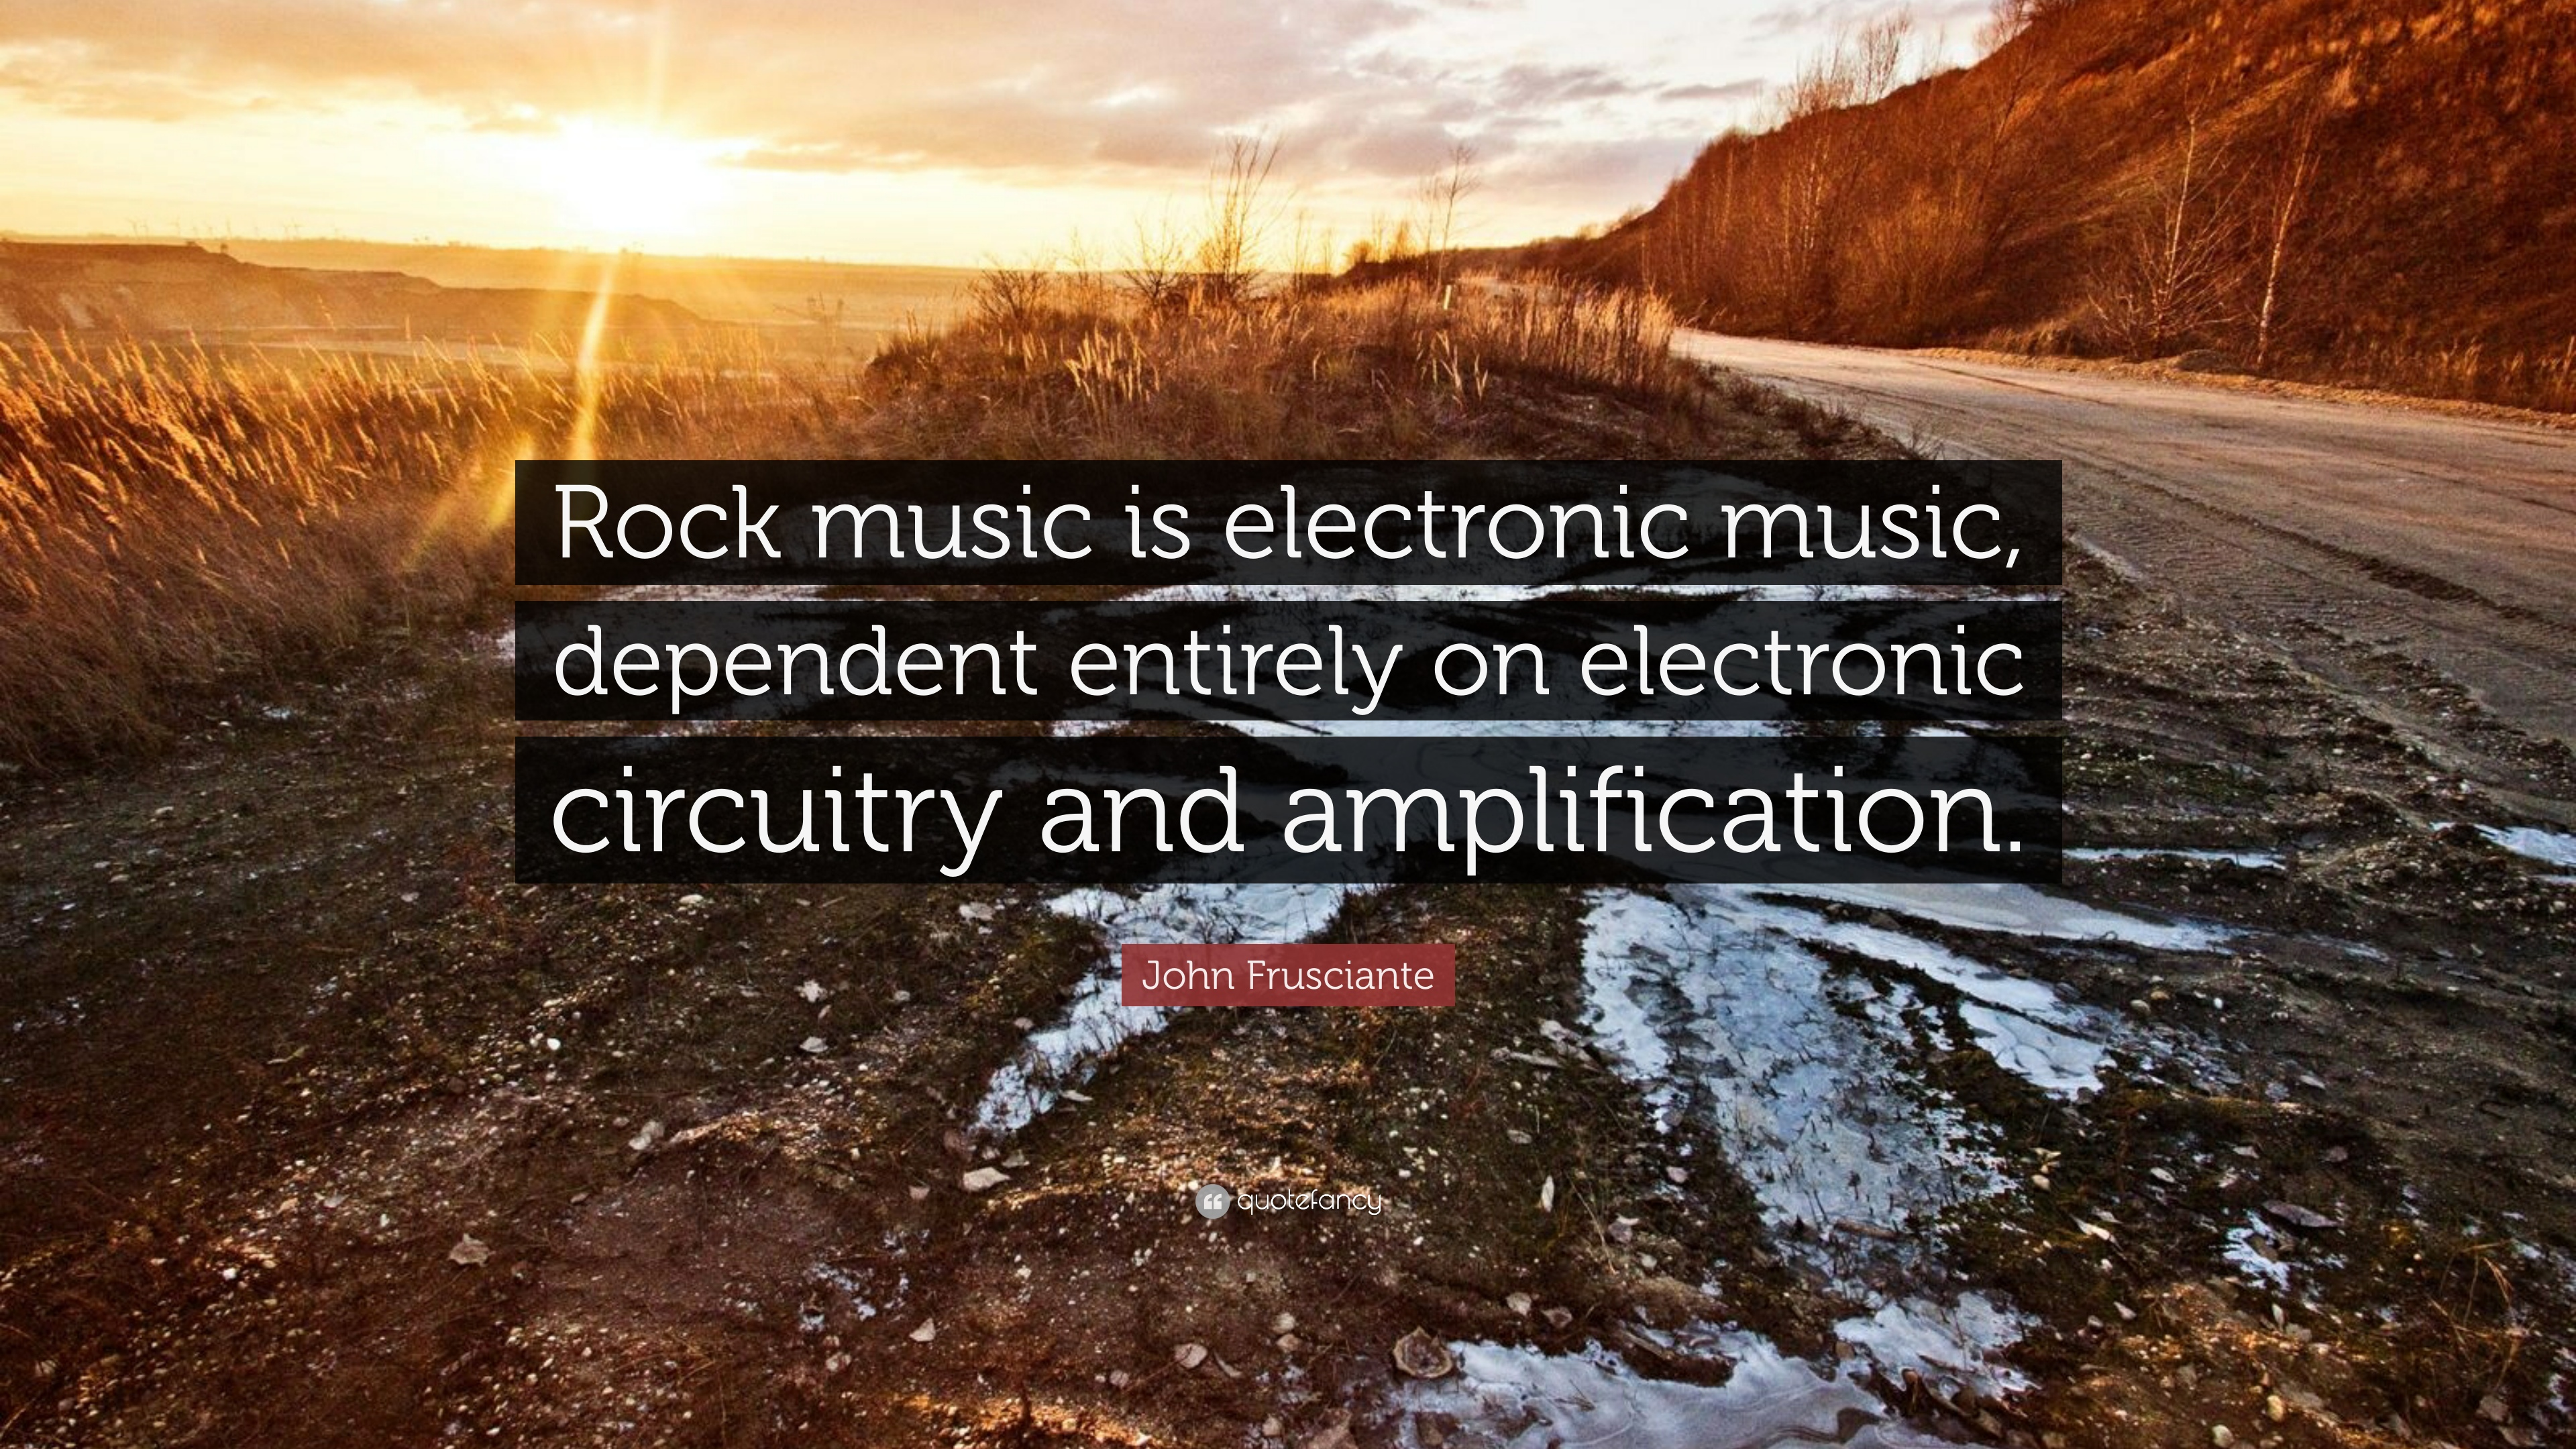 John Frusciante Quote Rock Music Is Electronic Dependent Circuits Explained Entirely On Circuitry